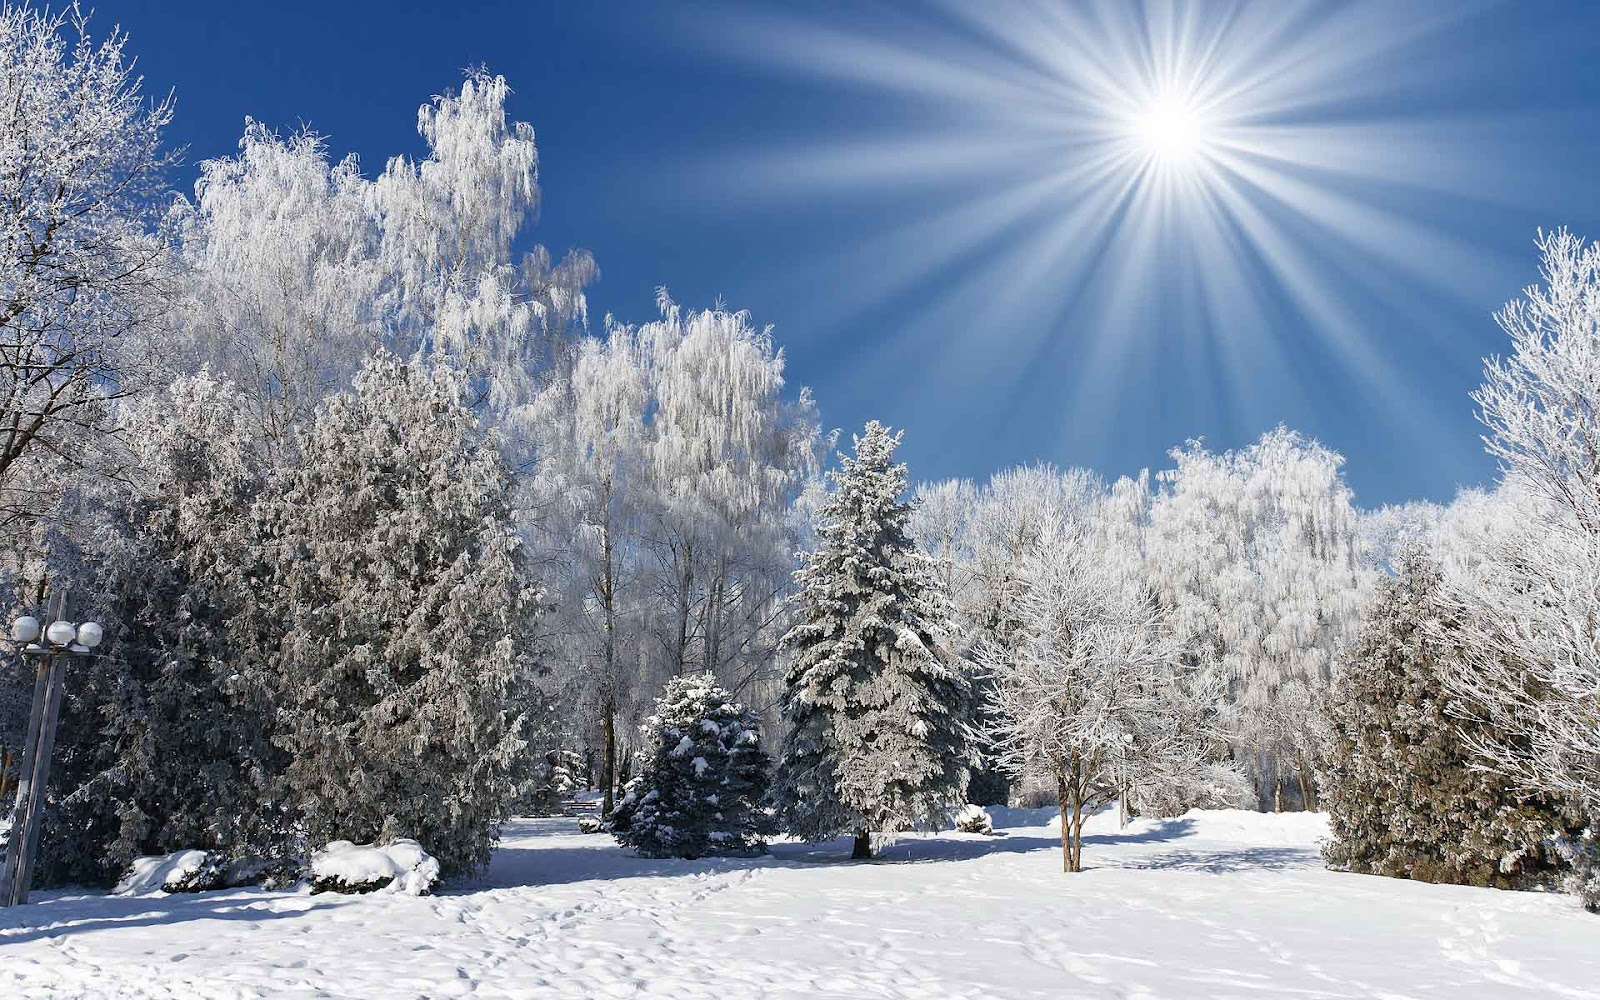 hd winter wallpaper met bomen en sneeuw hd winter foto jpg 365